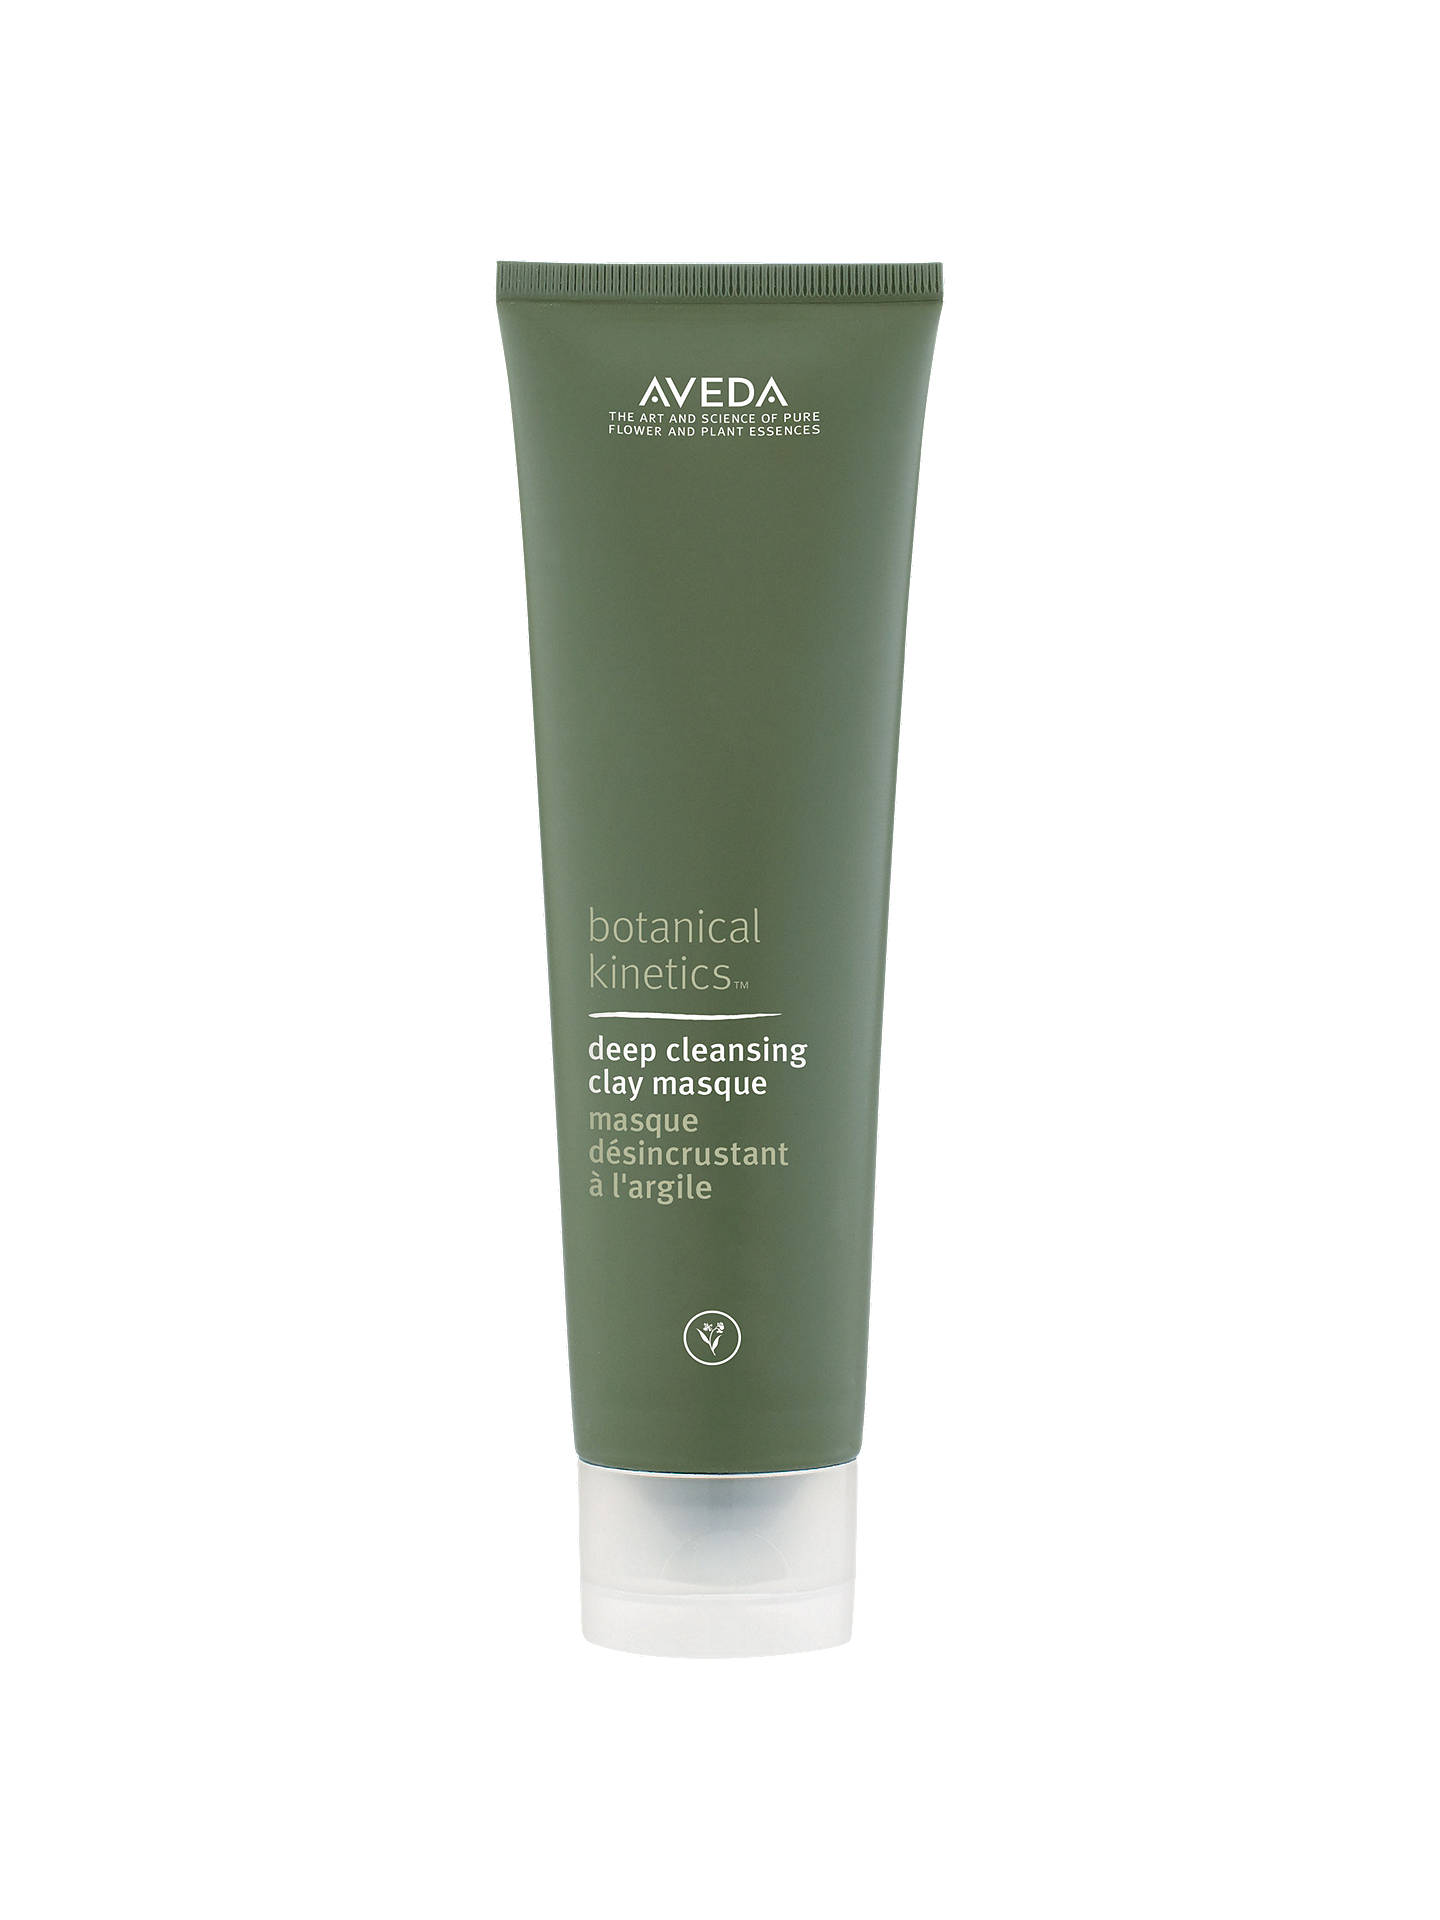 BuyAVEDA Botanical Kinetics™ Deep Cleansing Herbal Clay Masque, 125ml Online at johnlewis.com